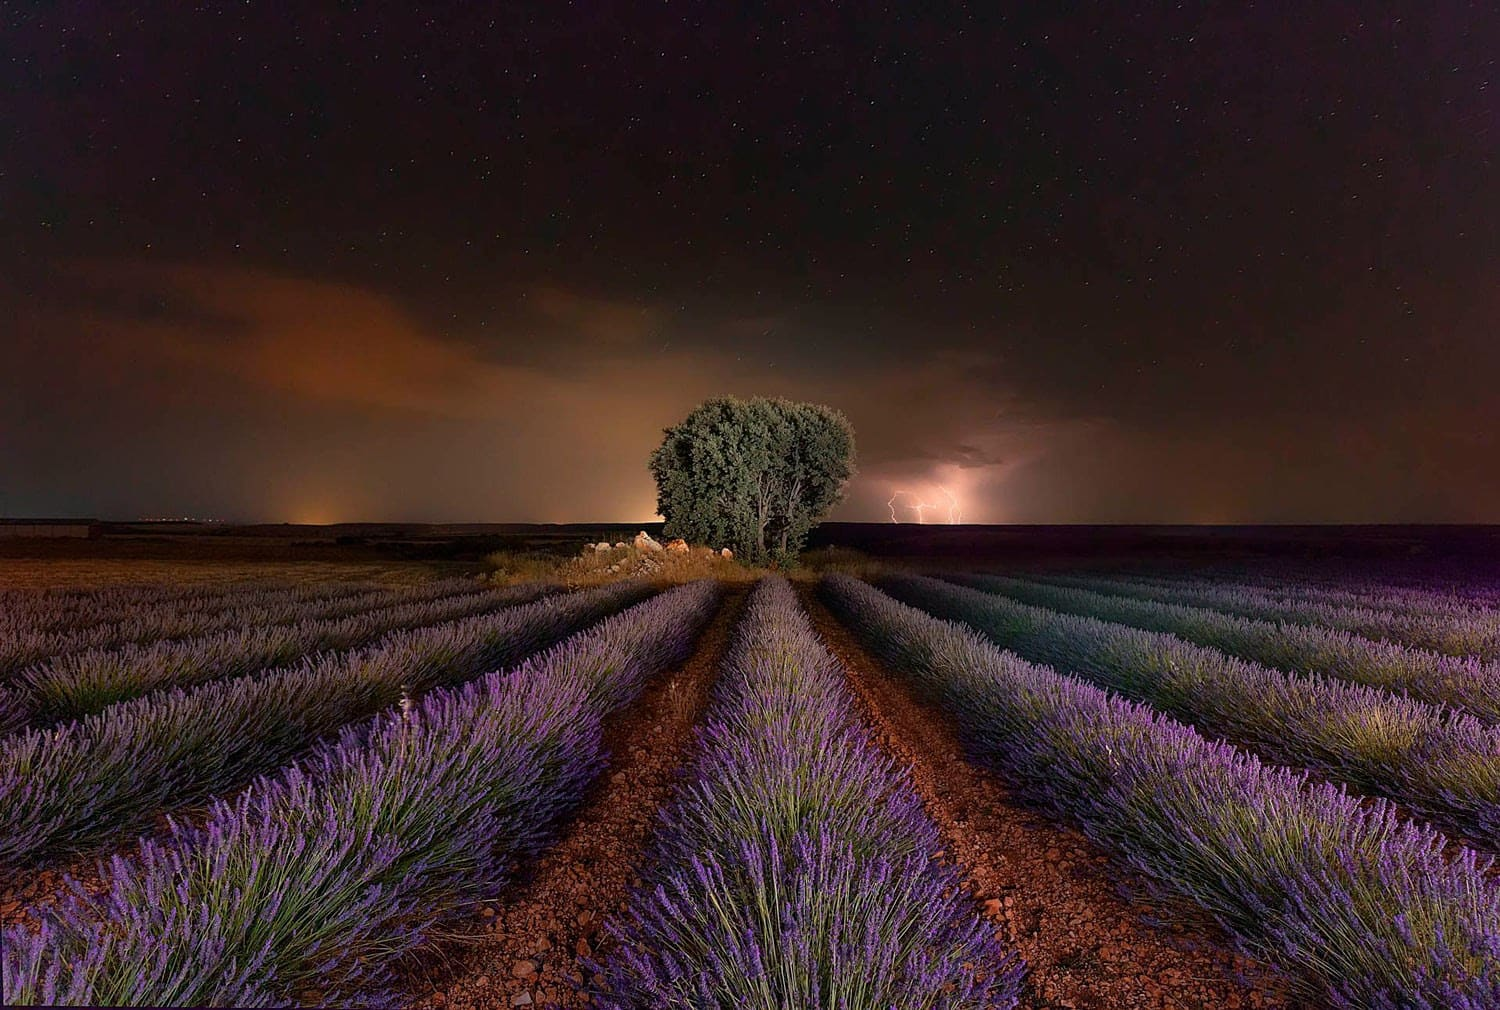 original_05-Lavender-and-Rays-by-Arsenio-G-lvez.jpg